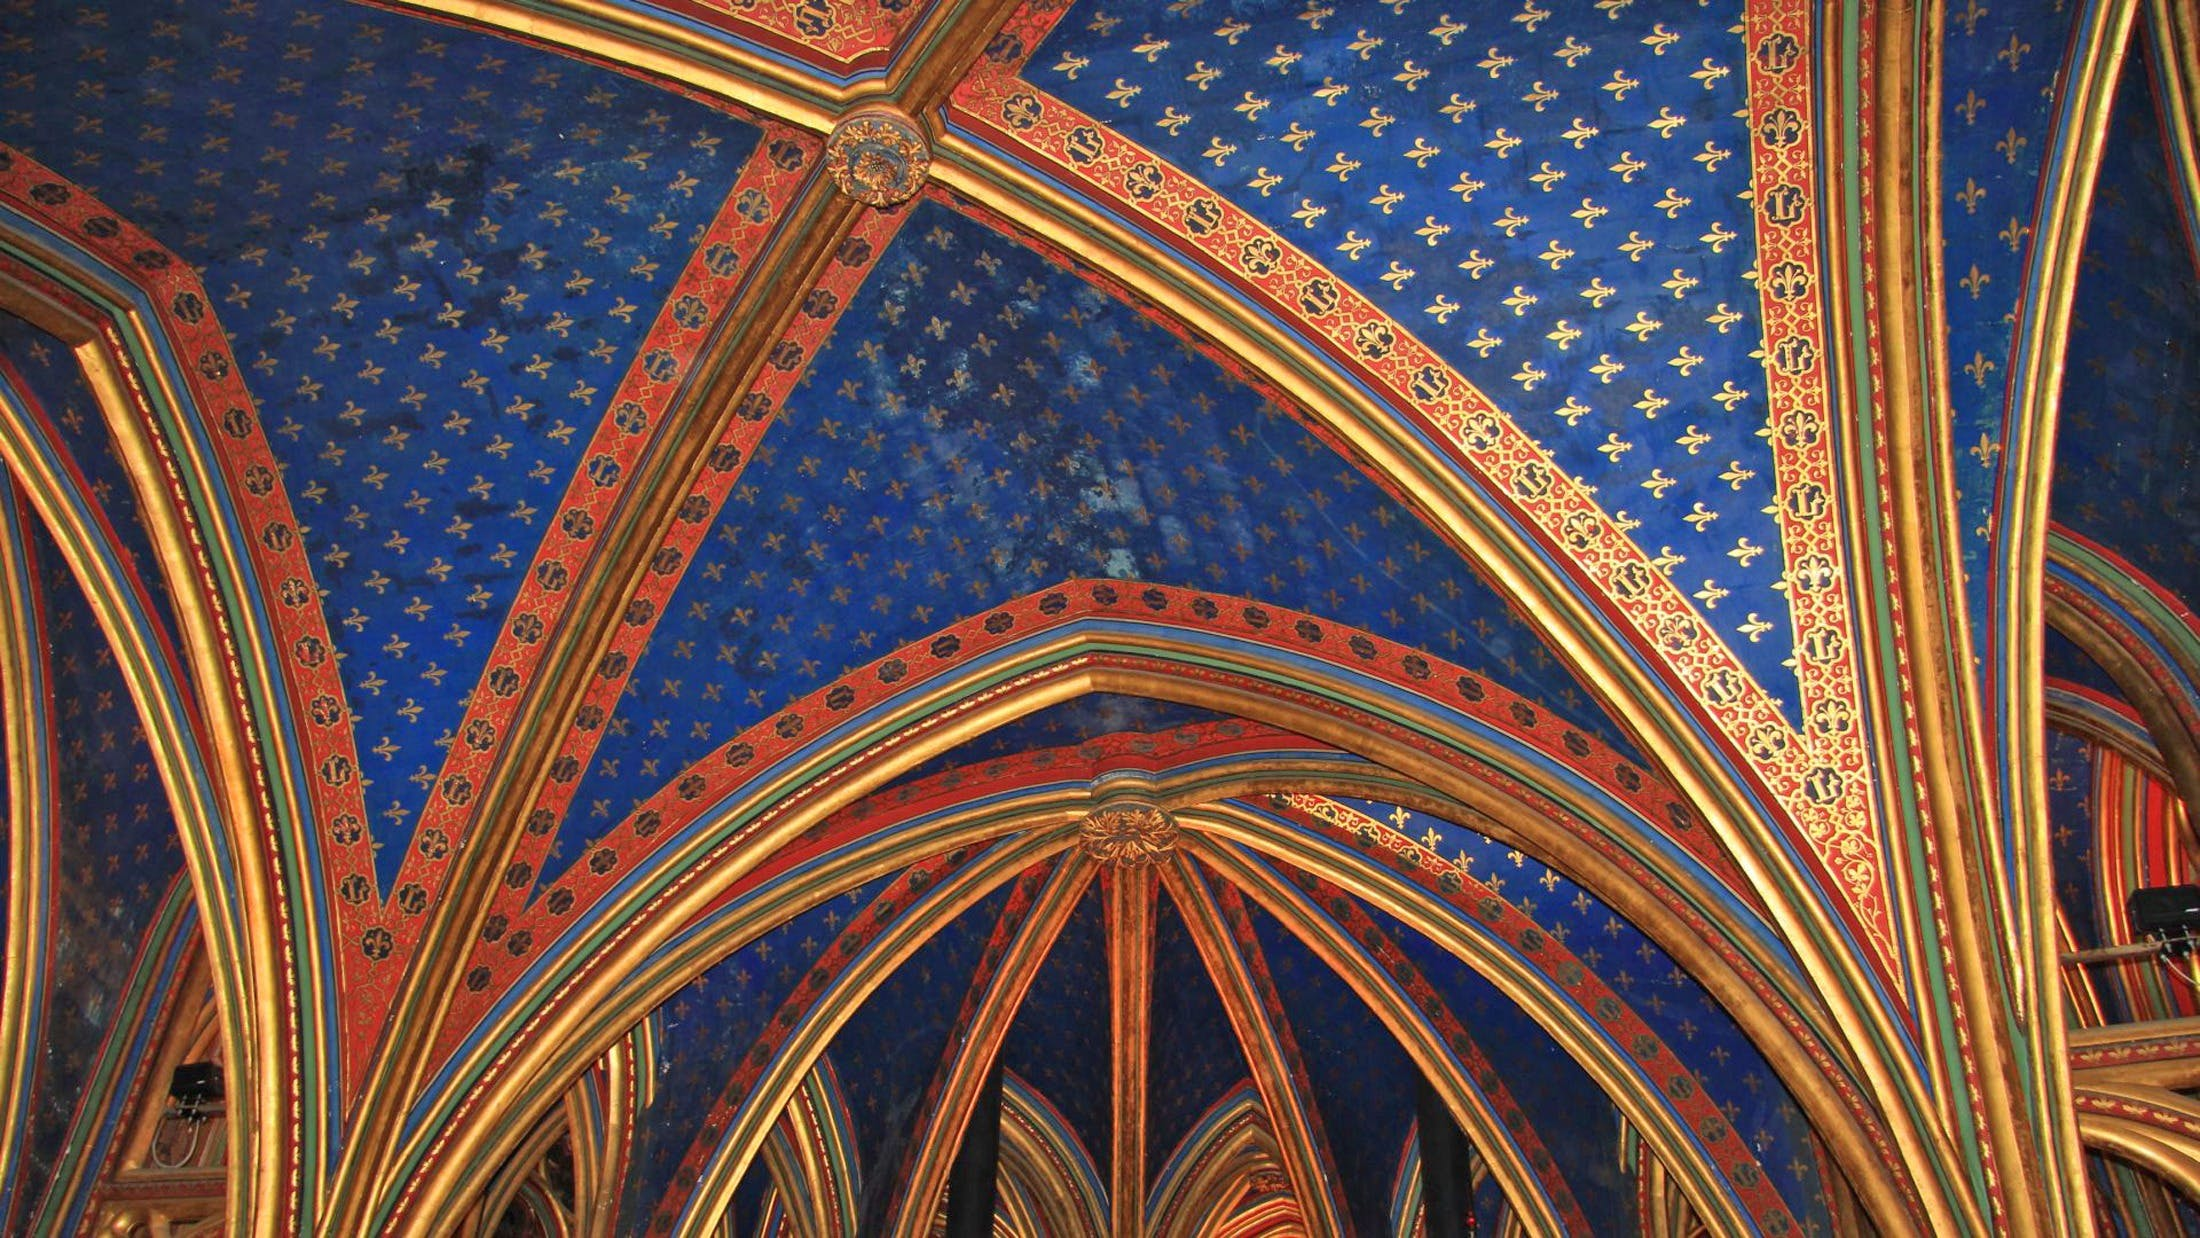 Blue and Gold Ceiling Panel